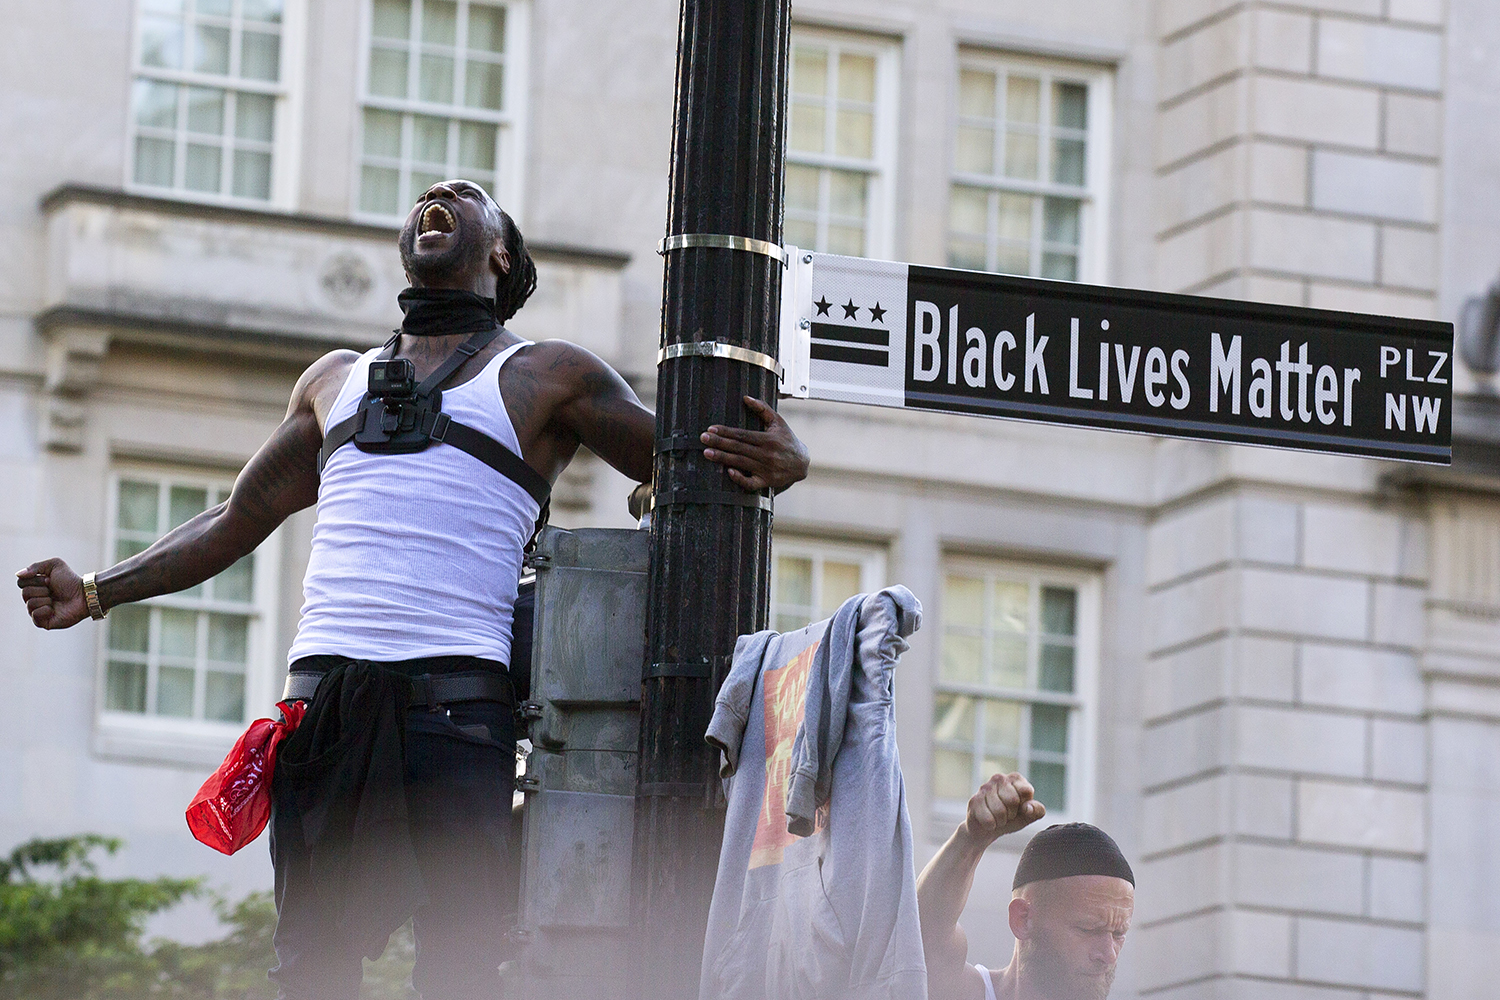 Mike D'angelo screams while holding on to a street sign newly named Black Lives Matter Plaza during a demonstration against racism and police brutality near the White House in Washington, D.C., on June 6. JOSE LUIS MAGANA/AFP via Getty Images